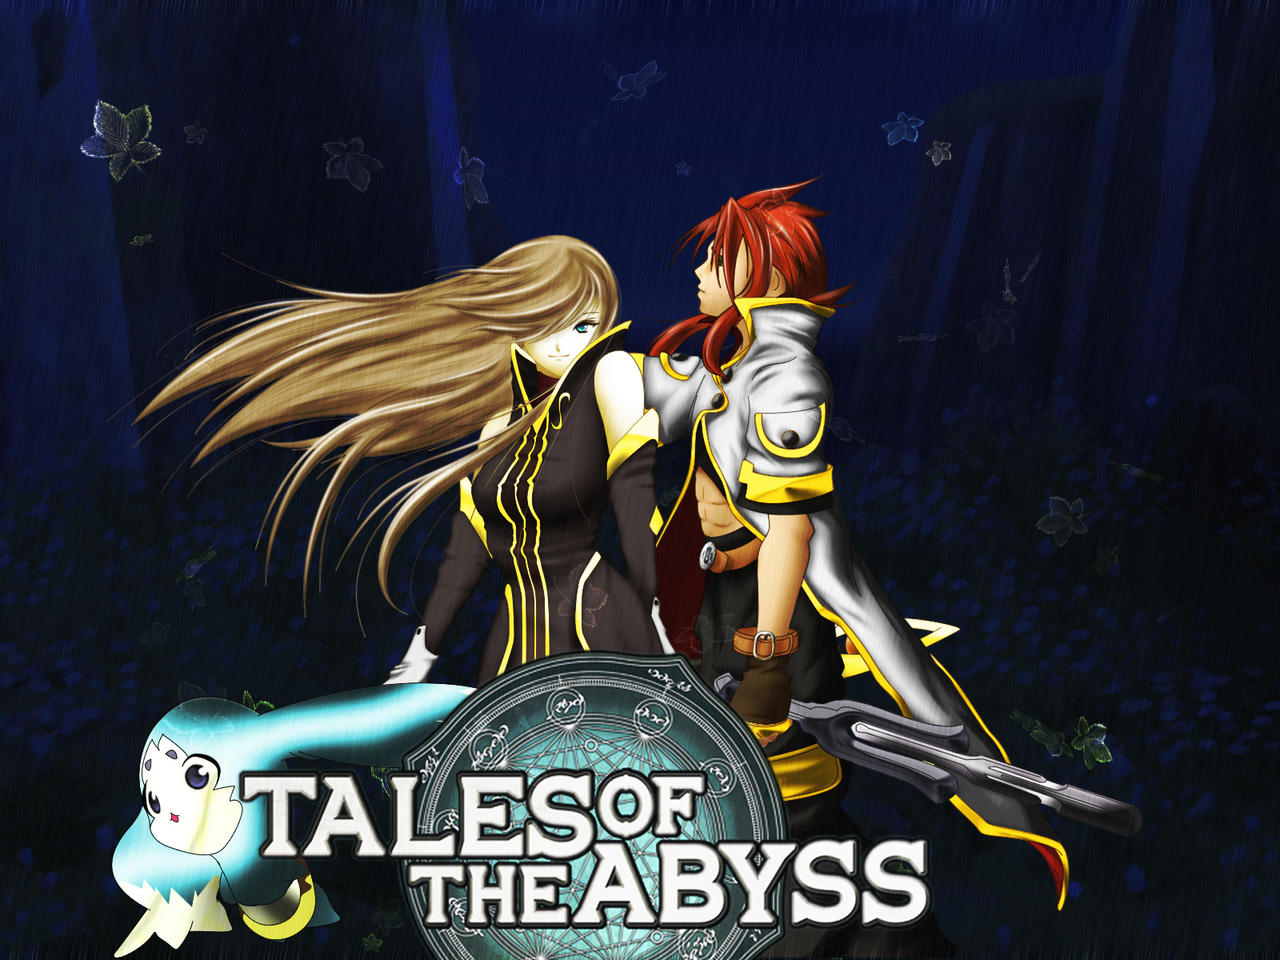 A blog dedicated to luke fon fabre and tear grants, from the video games tales of the abyss